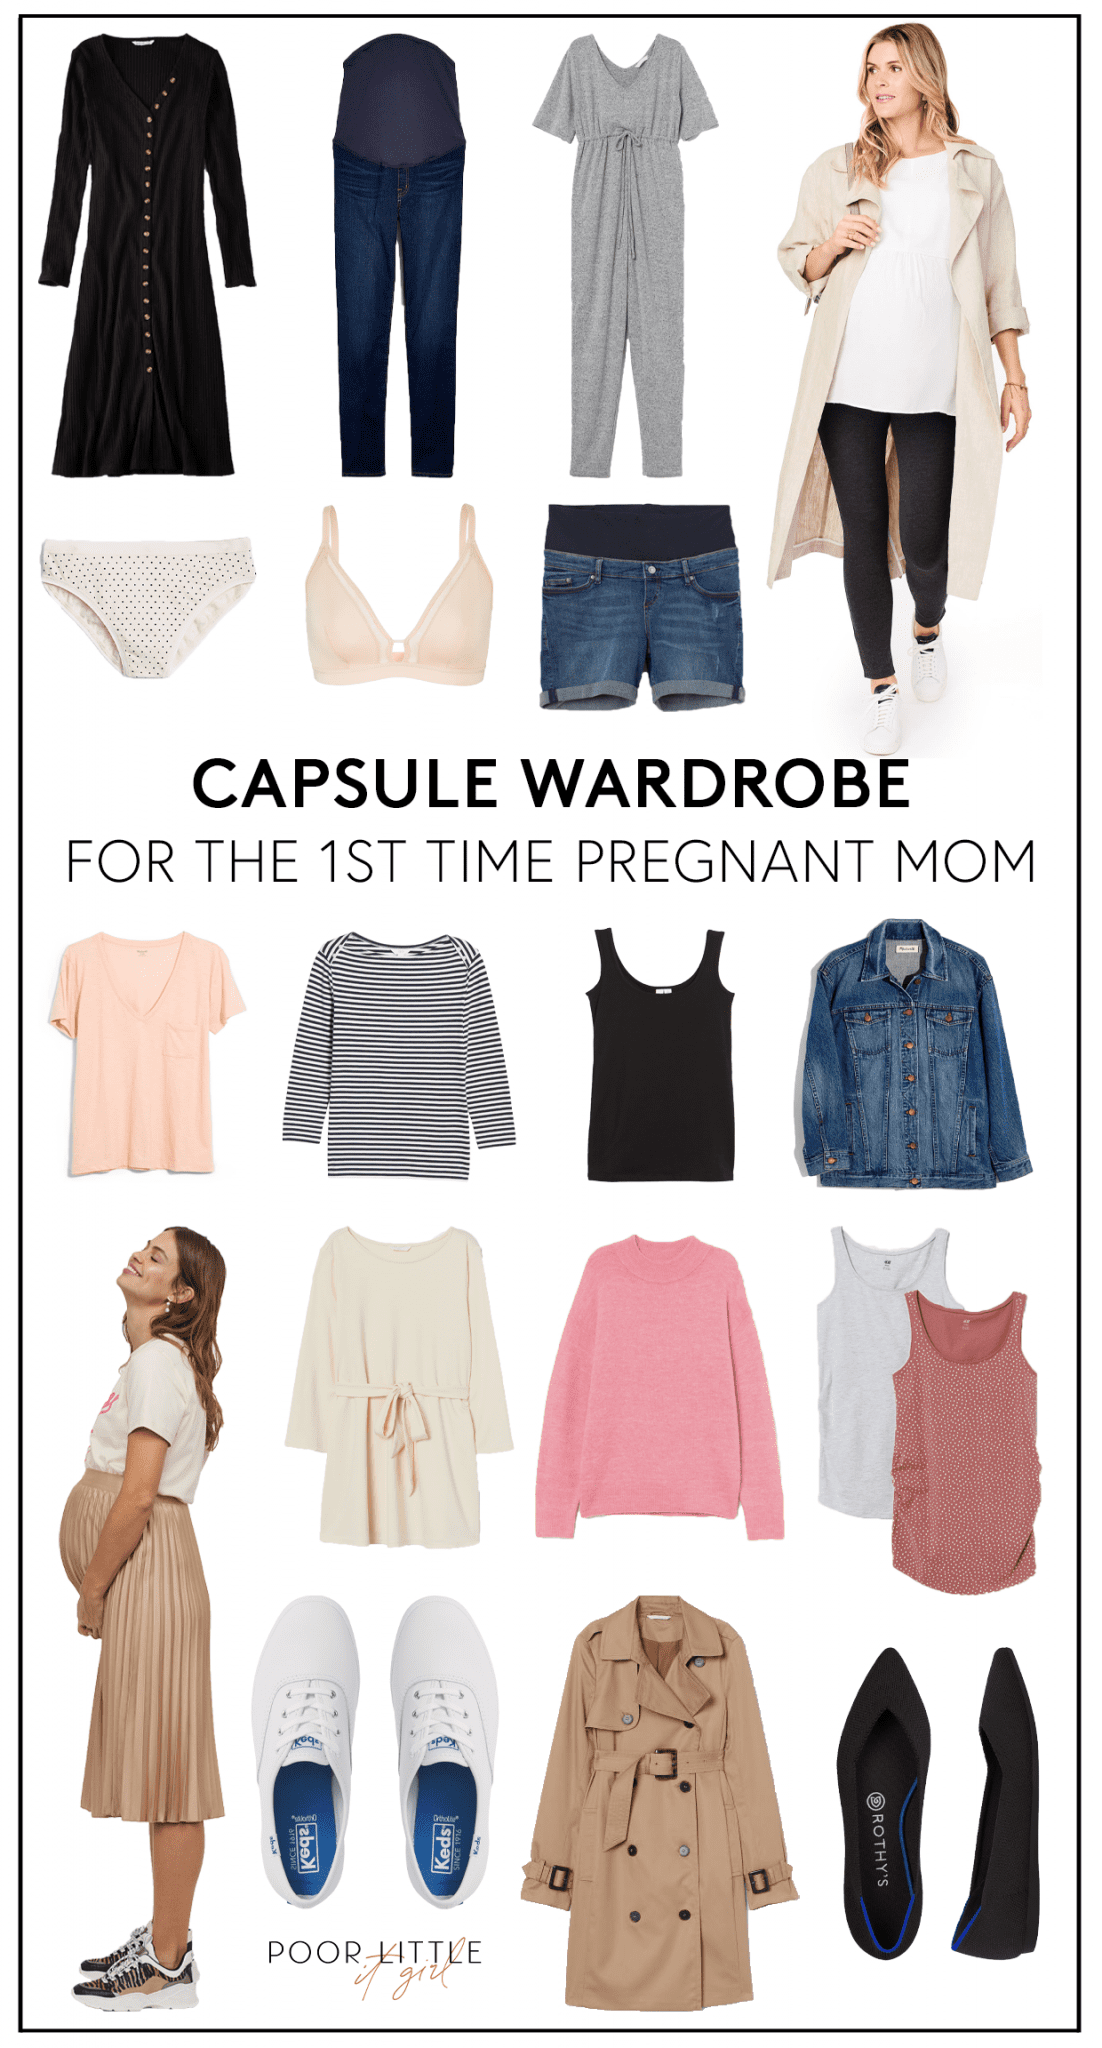 Maternity Capsule Wardrobe For The First Time Mom Poor Little It Girl